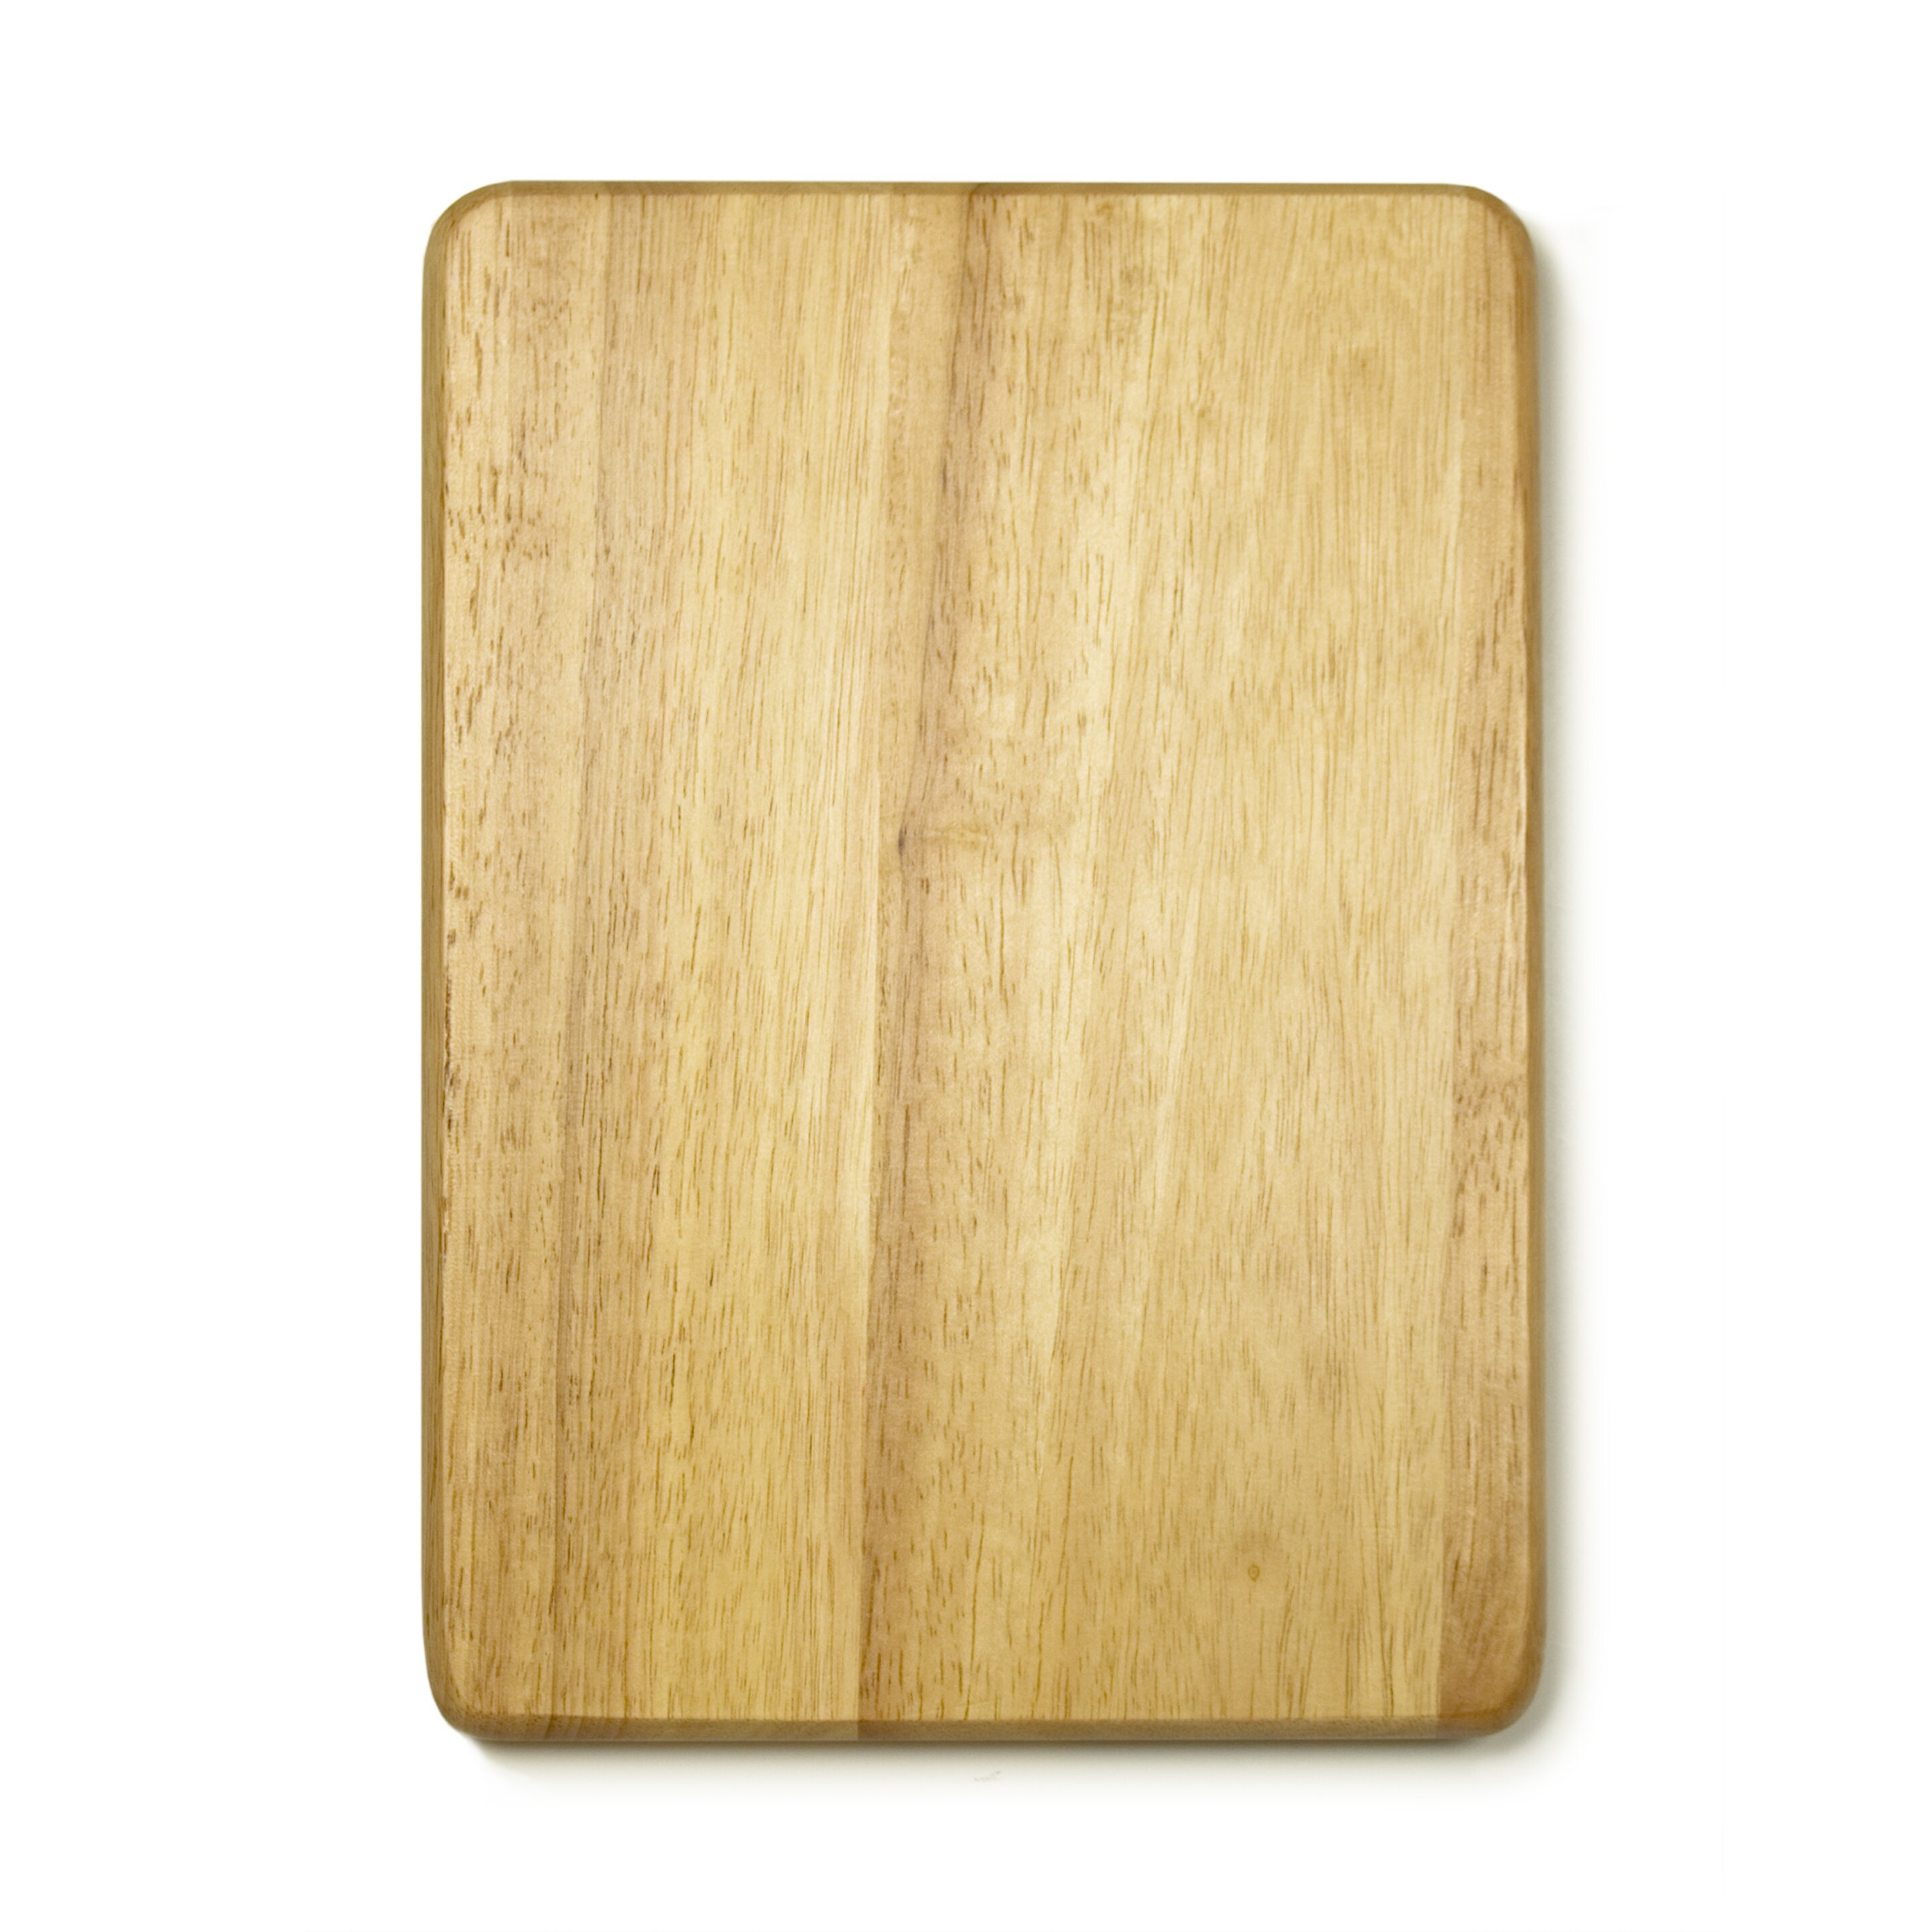 Architec gripperwood cutting board reviews wayfair for Architec cutting board